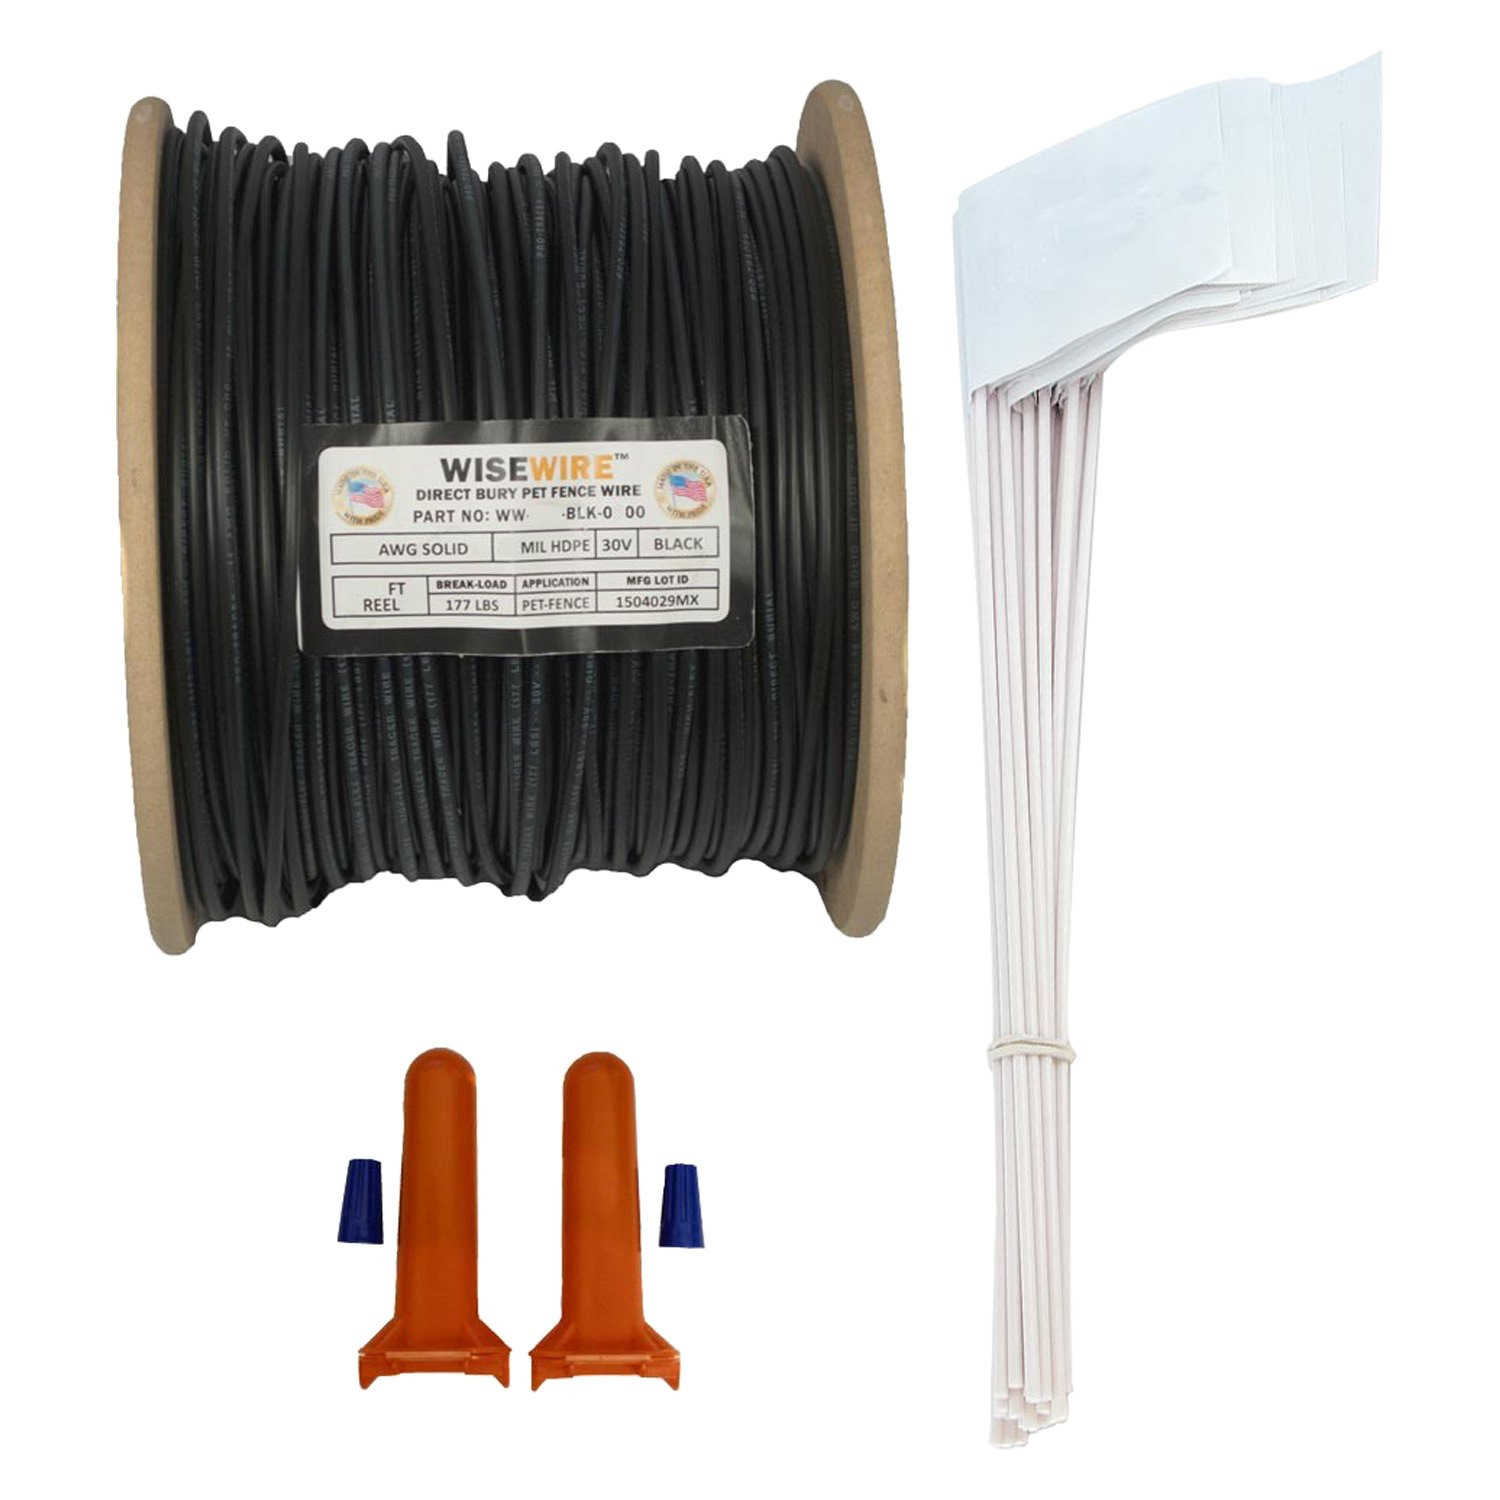 Pet Stores USA® - WiseWire ™ Boundary Wire Kit